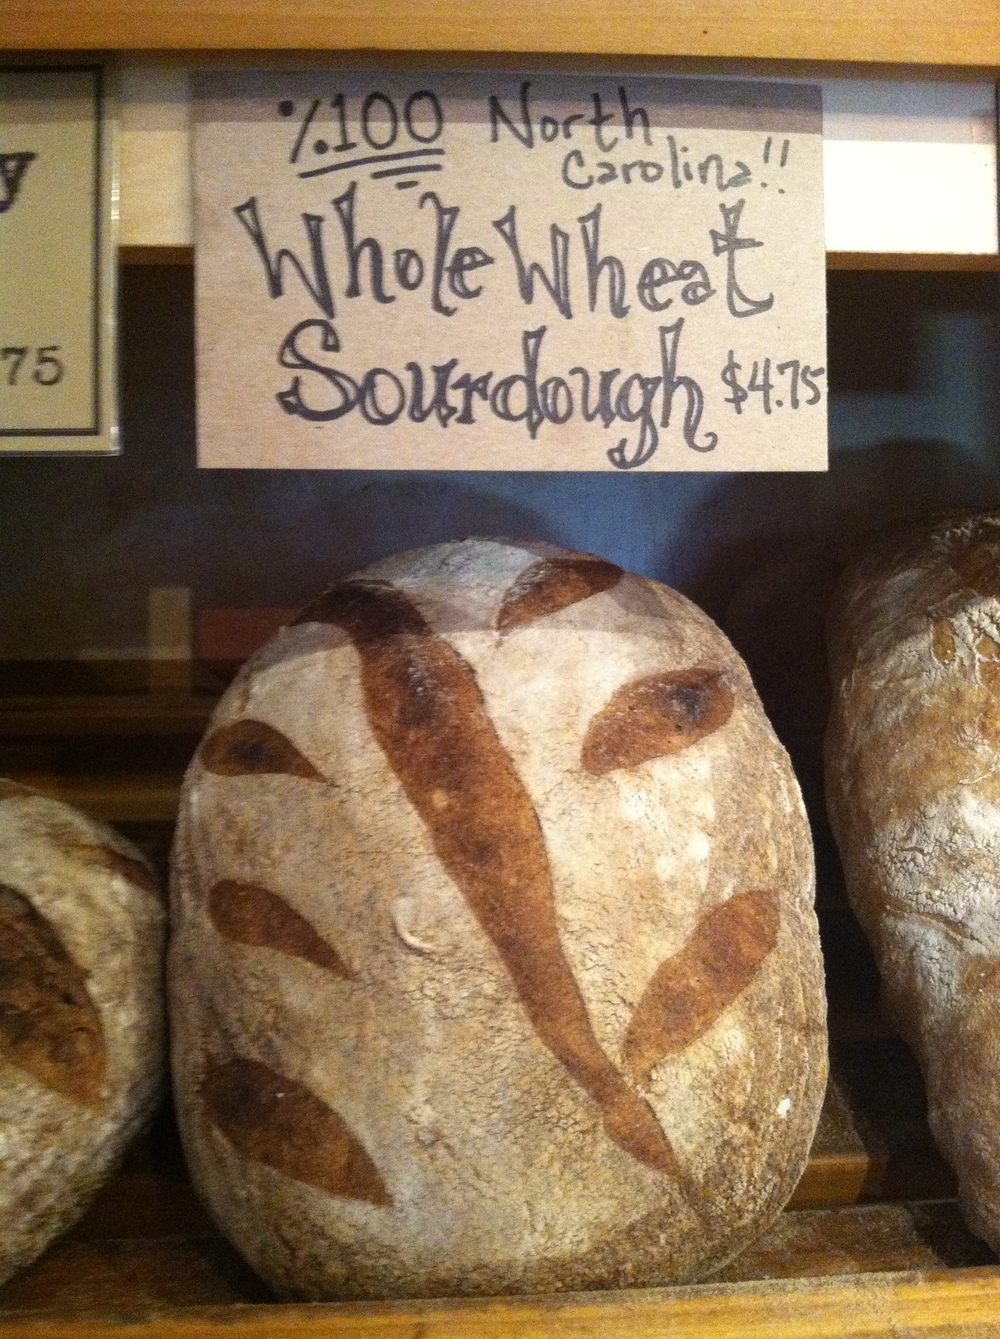 Flat Rock Village Bakery's   Whole Wheat bread using 100% of Carolina Ground's Type 85 flour.